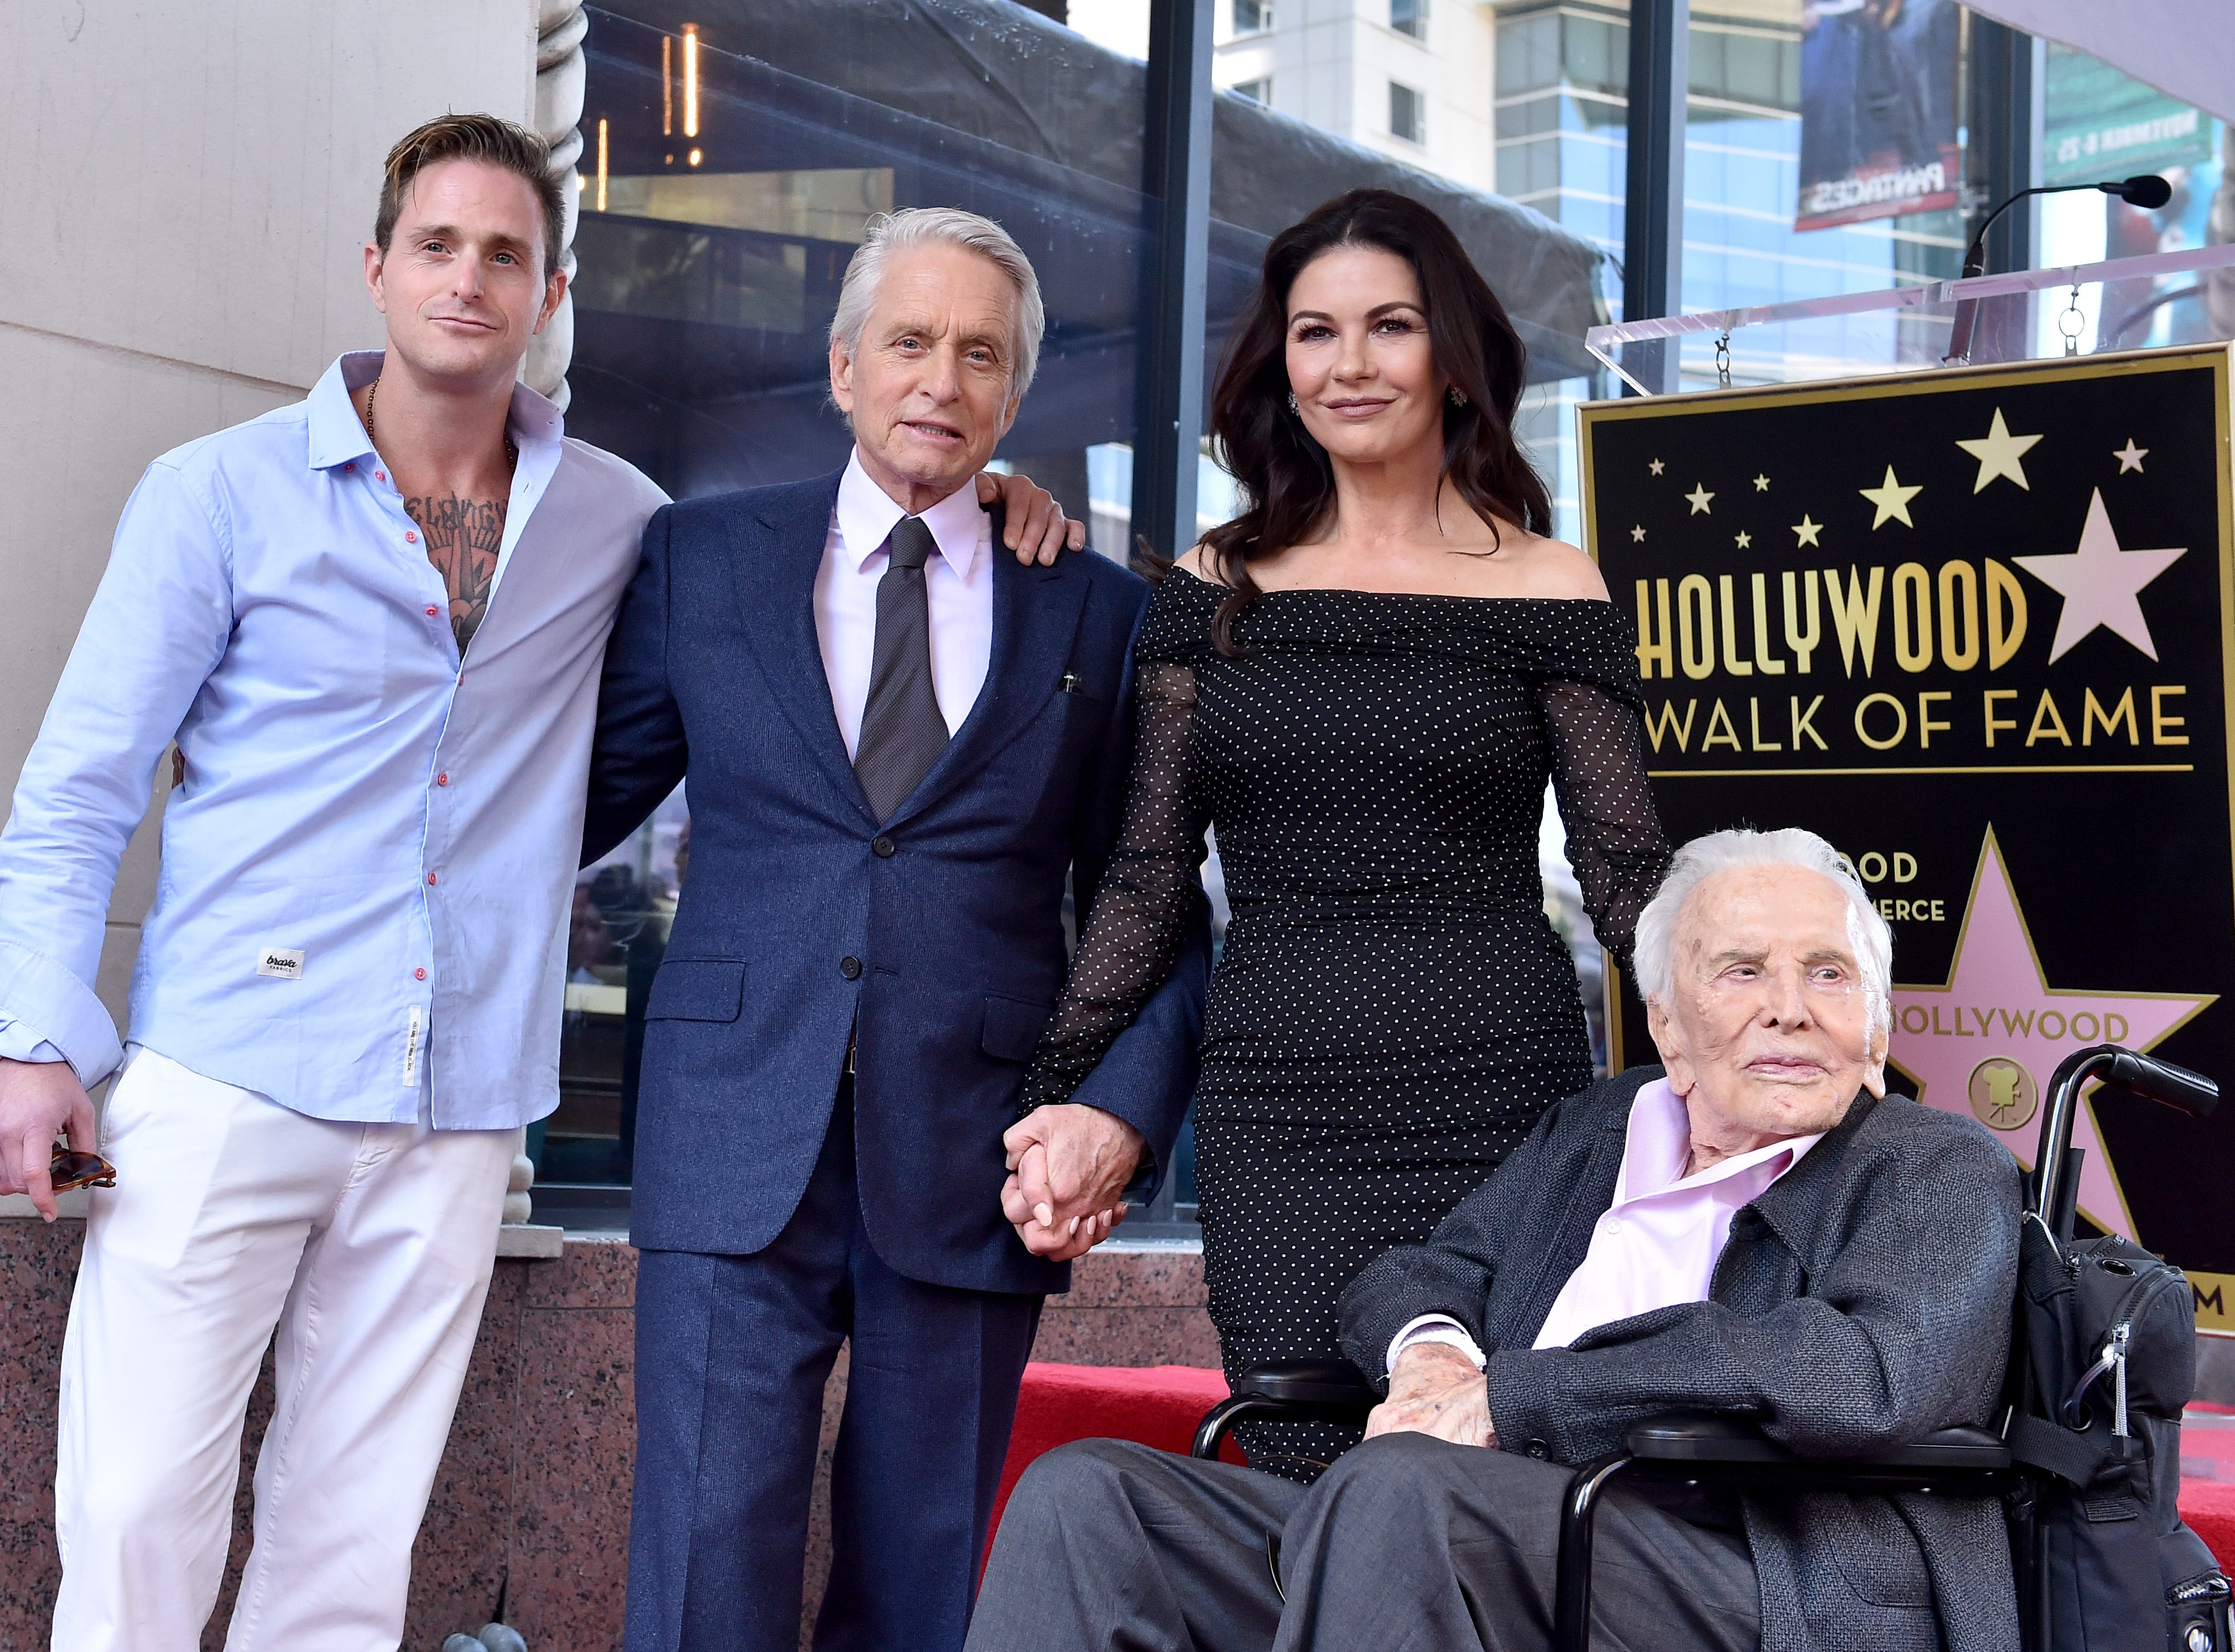 HOLLYWOOD, CA - NOVEMBER 06:  Cameron Douglas, Michael Douglas, Catherine Zeta-Jones and Kirk Douglas attend the ceremony honoring Michael Douglas with star on the Hollywood Walk of Fame on November 06, 2018 in Hollywood, California.  (Photo by Axelle/Bauer-Griffin/FilmMagic) ORG XMIT: 775248764 ORIG FILE ID: 1058404894